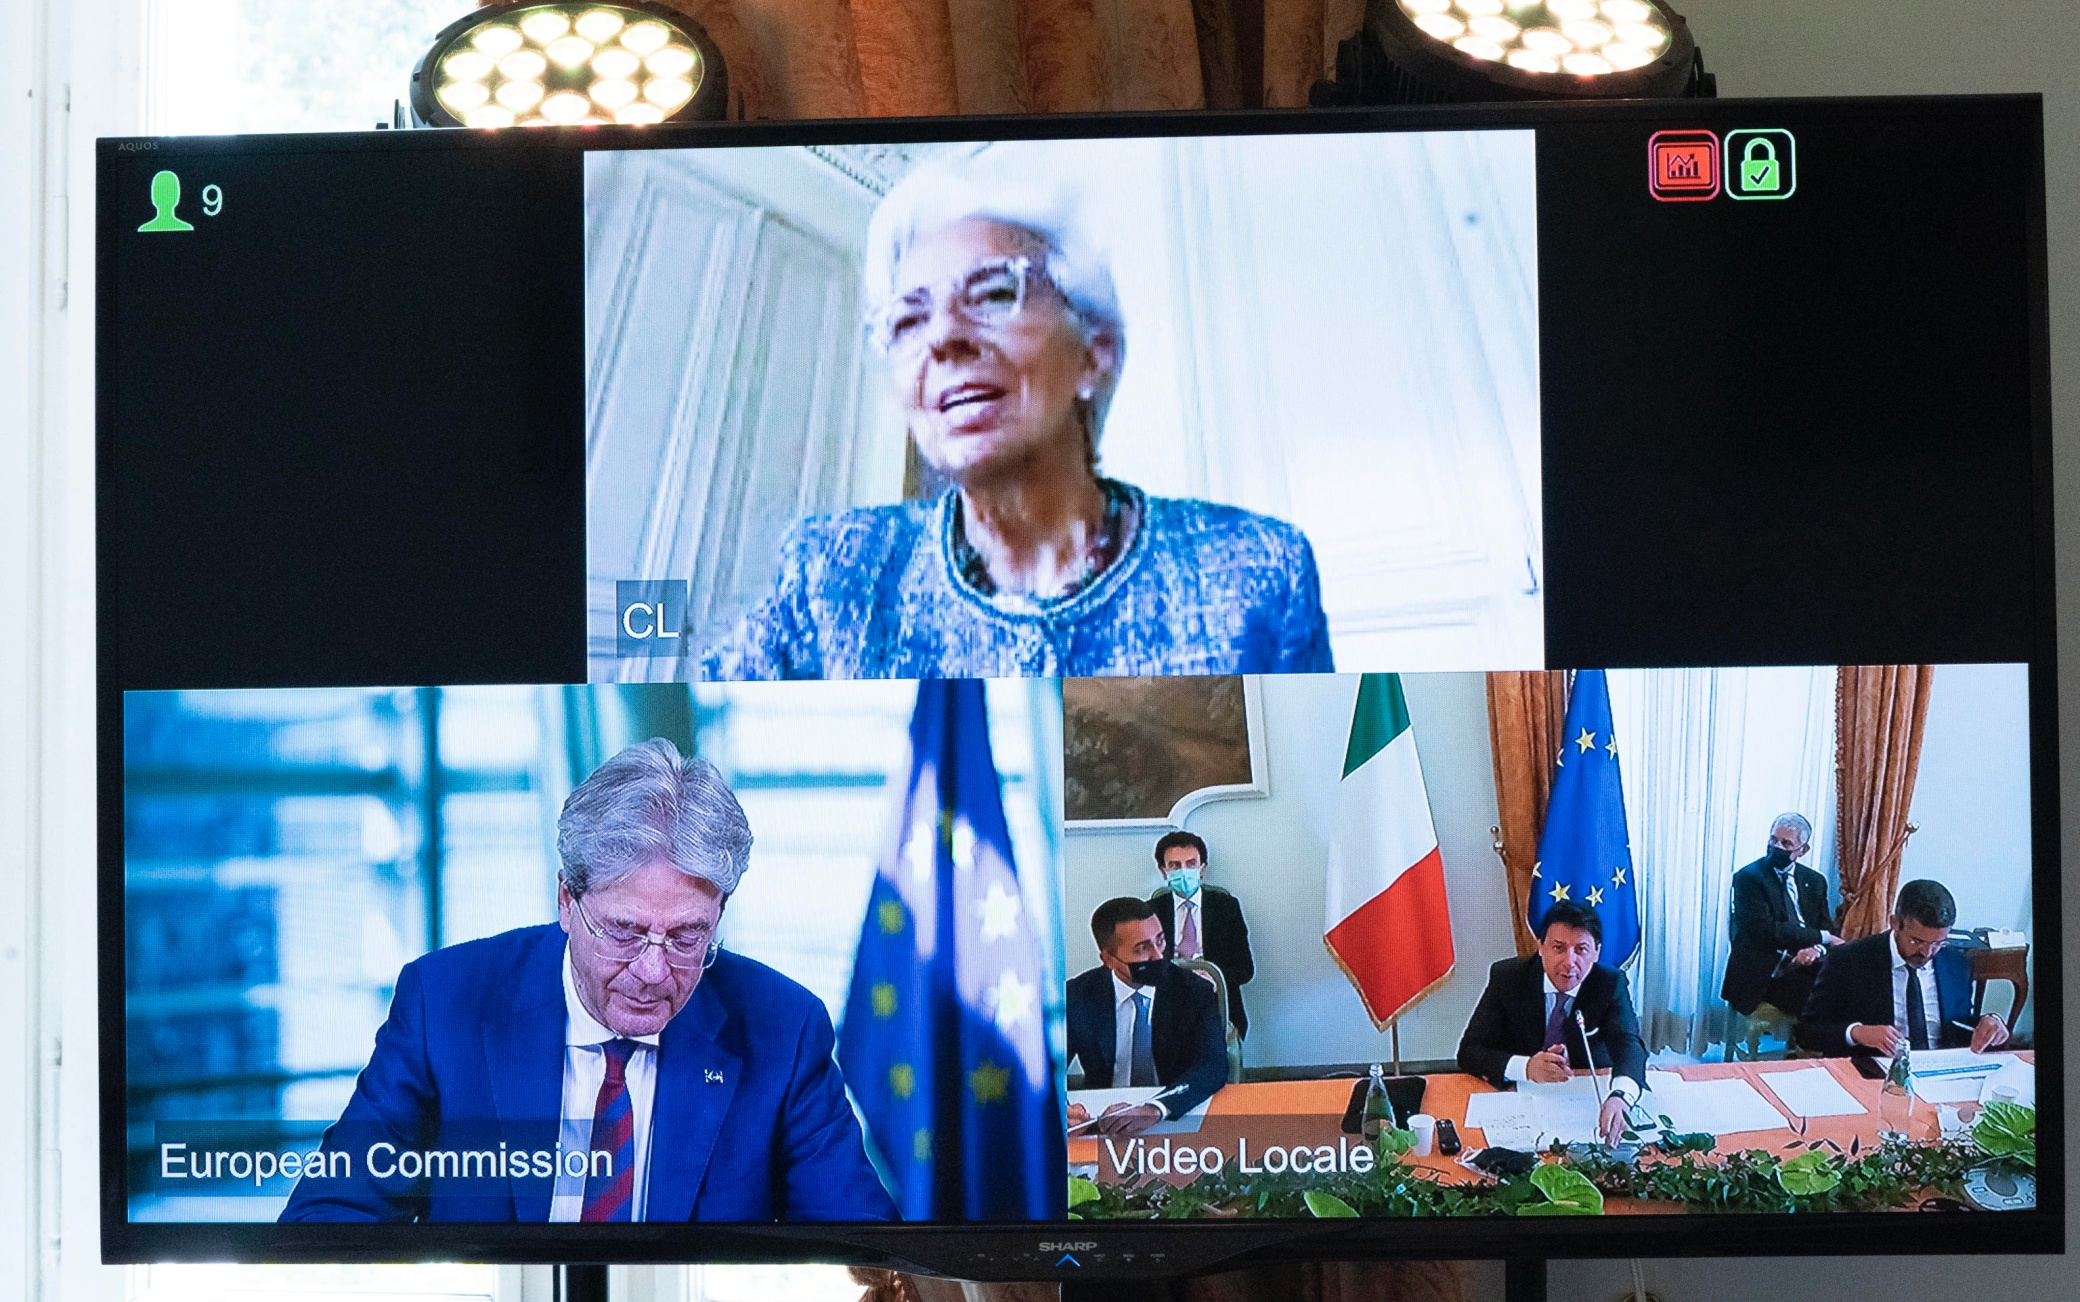 """This handout picture, released by Chigi Palace Press office, shows a moment of the illustration of the relaunch plan of Italy by the Italian Prime Minister Giuseppe Conte, at Villa Pamphilj, Rome, Italy, 13 June 2020. """"Modernisation of the Country. Ecological transition. Social, territorial and gender inclusion"""". These are the three """"strategic lines"""" that Conte underlined. """"We are working to have a more efficient, digitized Public Administration. We must ensure that existing digital technologies for everyday life can increase the productivity of the economy and innovation,"""" he adds. ANSA / Filippo Attili - Chigi Palace Press office +++ ANSA PROVIDES ACCESS TO THIS HANDOUT PHOTO TO BE USED SOLELY TO ILLUSTRATE NEWS REPORTING OR COMMENTARY ON THE FACTS OR EVENTS DEPICTED IN THIS IMAGE; NO ARCHIVING; NO LICENSING +++"""